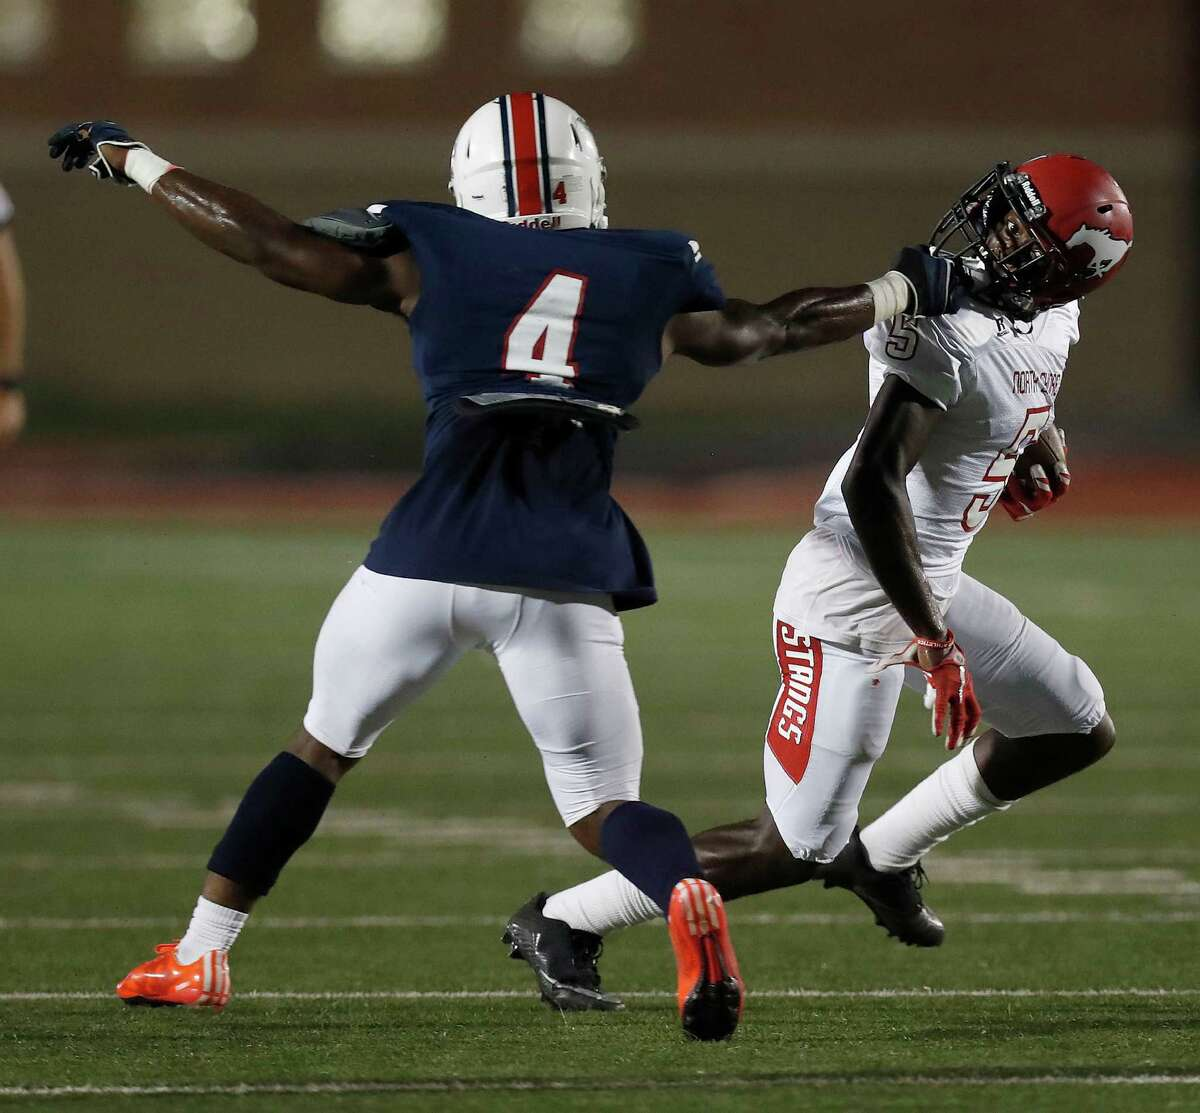 Atascocita's Tralan Hutchinson (4) grabs the facemark of North Shore wide receiver Patrick Davis (5) during the first half of a high school football game at Turner Stadium, Friday, Oct. 7, 2016 in Humble.